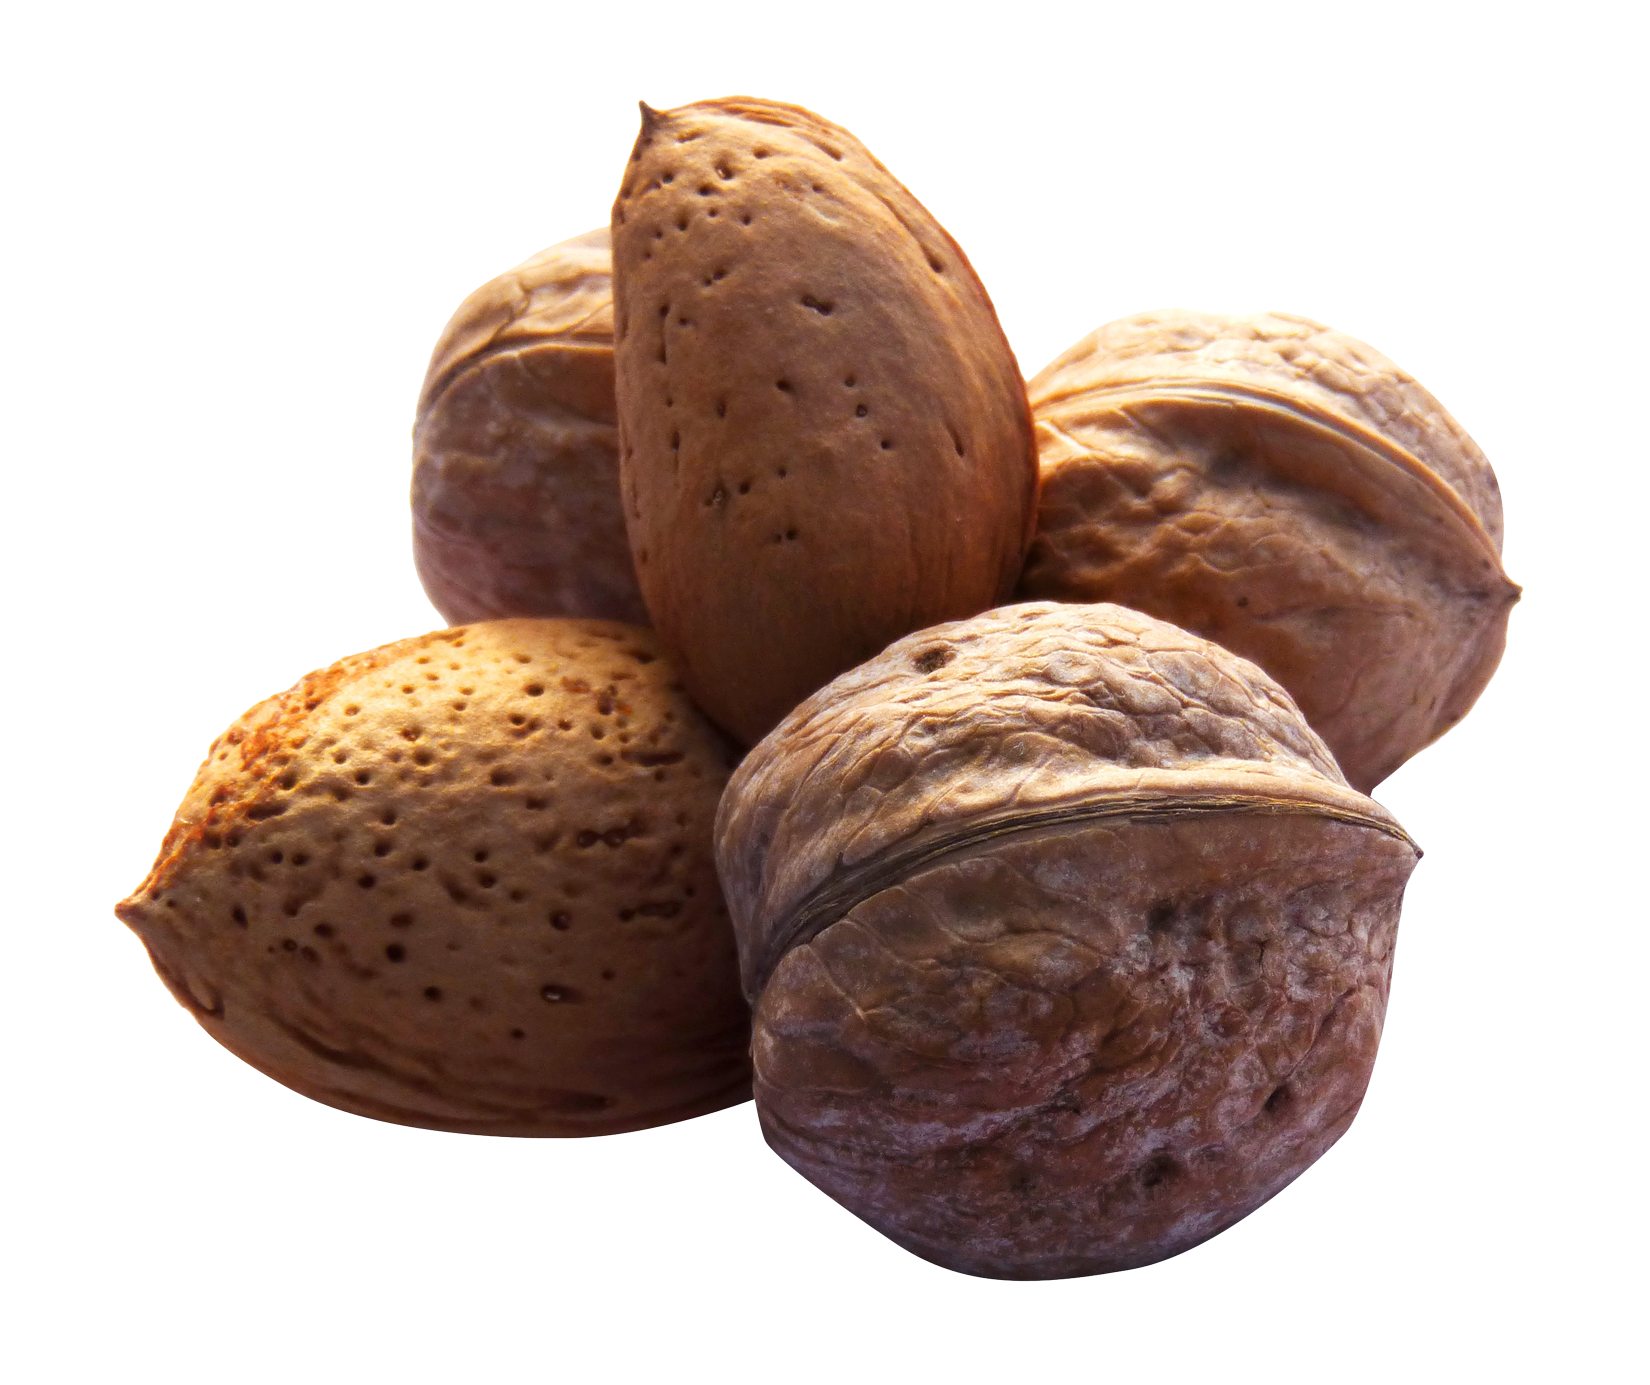 Png image purepng free. Fruit clipart nuts